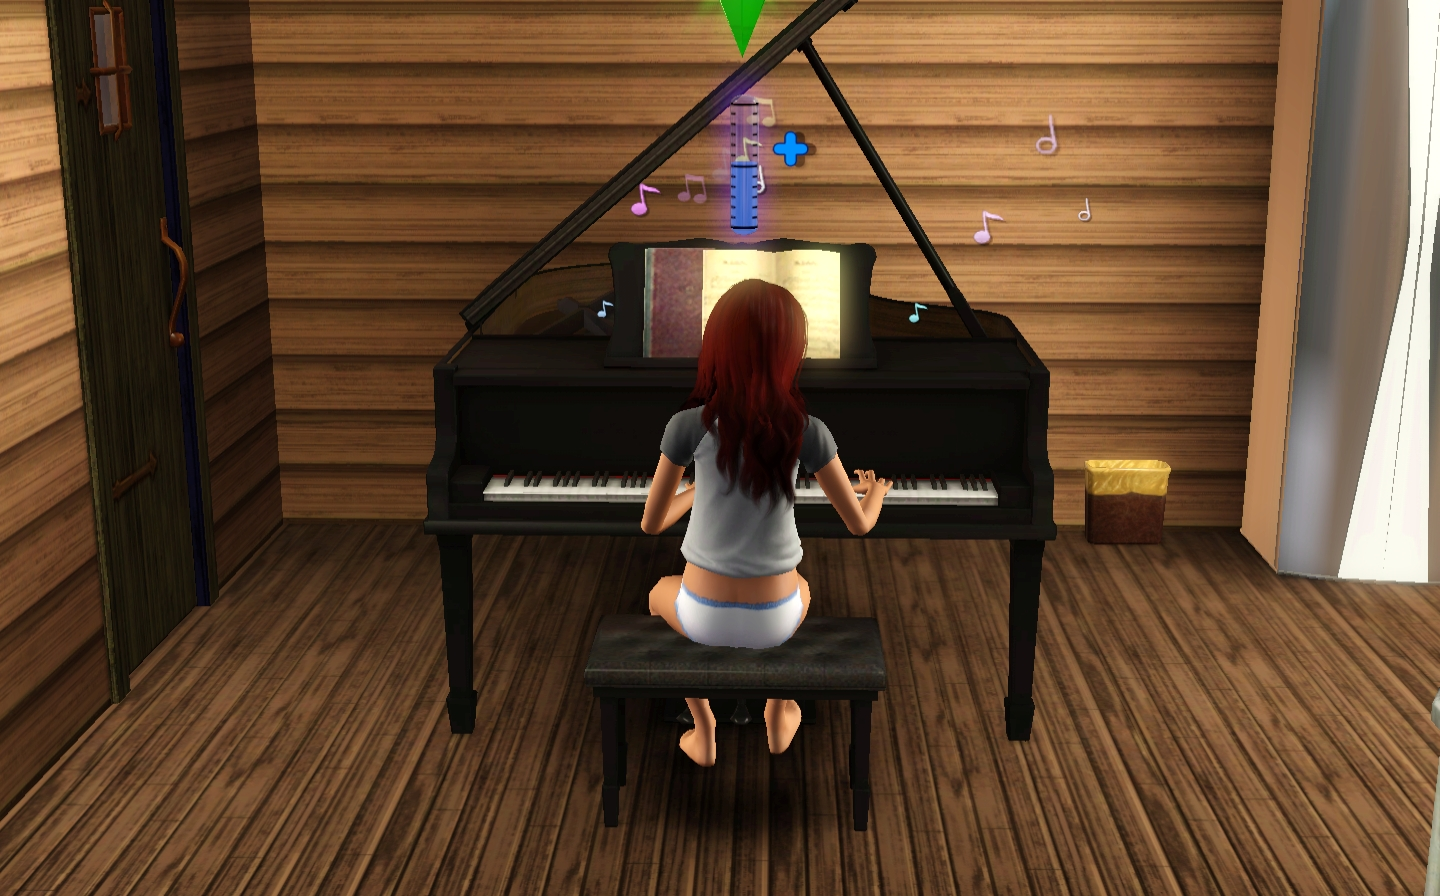 Sims 3: The Ultimate Legacy Challenge